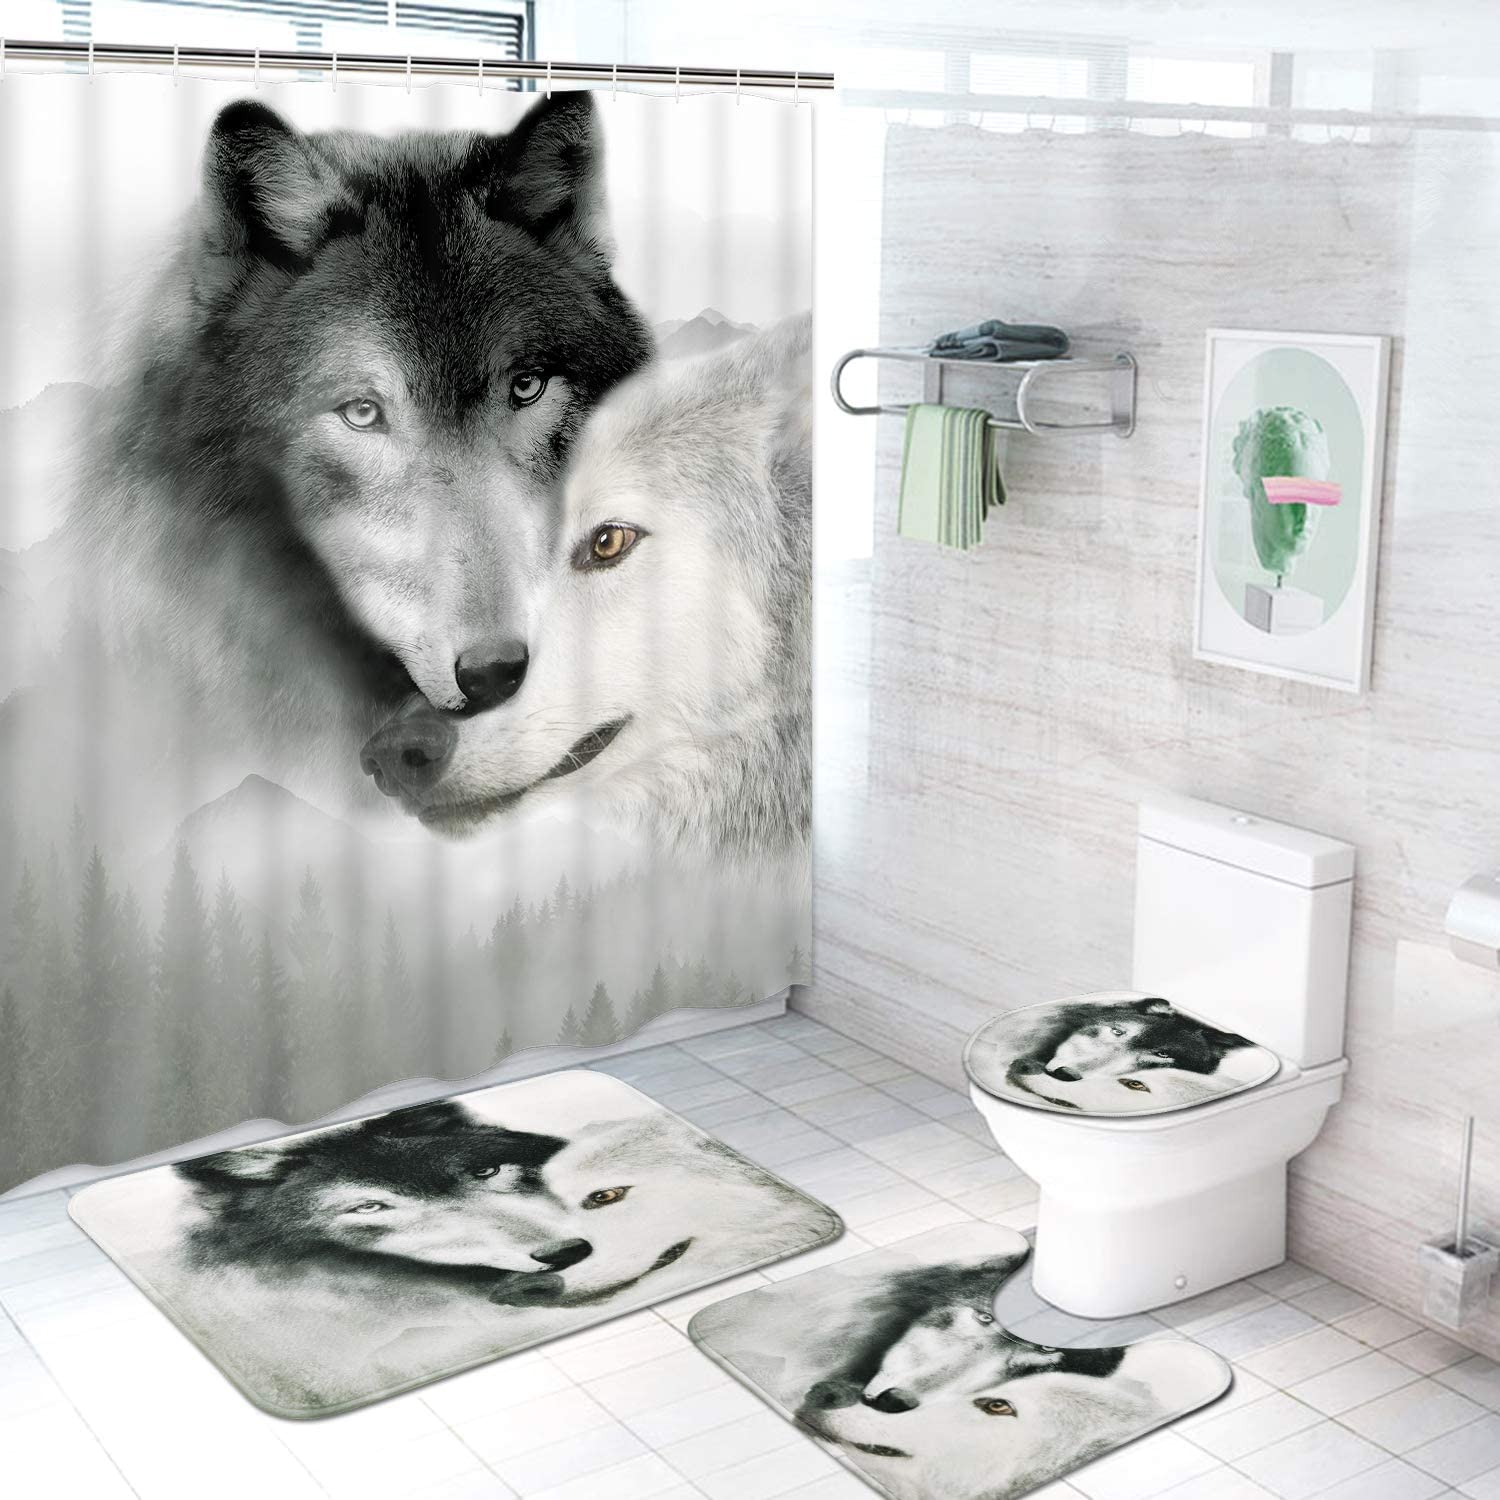 Pknoclan 4 Pcs Wolf Shower Curtain Set with Non-Slip Rug, Toilet Lid Cover and Bath Mat, Waterproof Wild Animal Shower Curtain with 12 Hooks, Wolf Bathroom Set, Black White